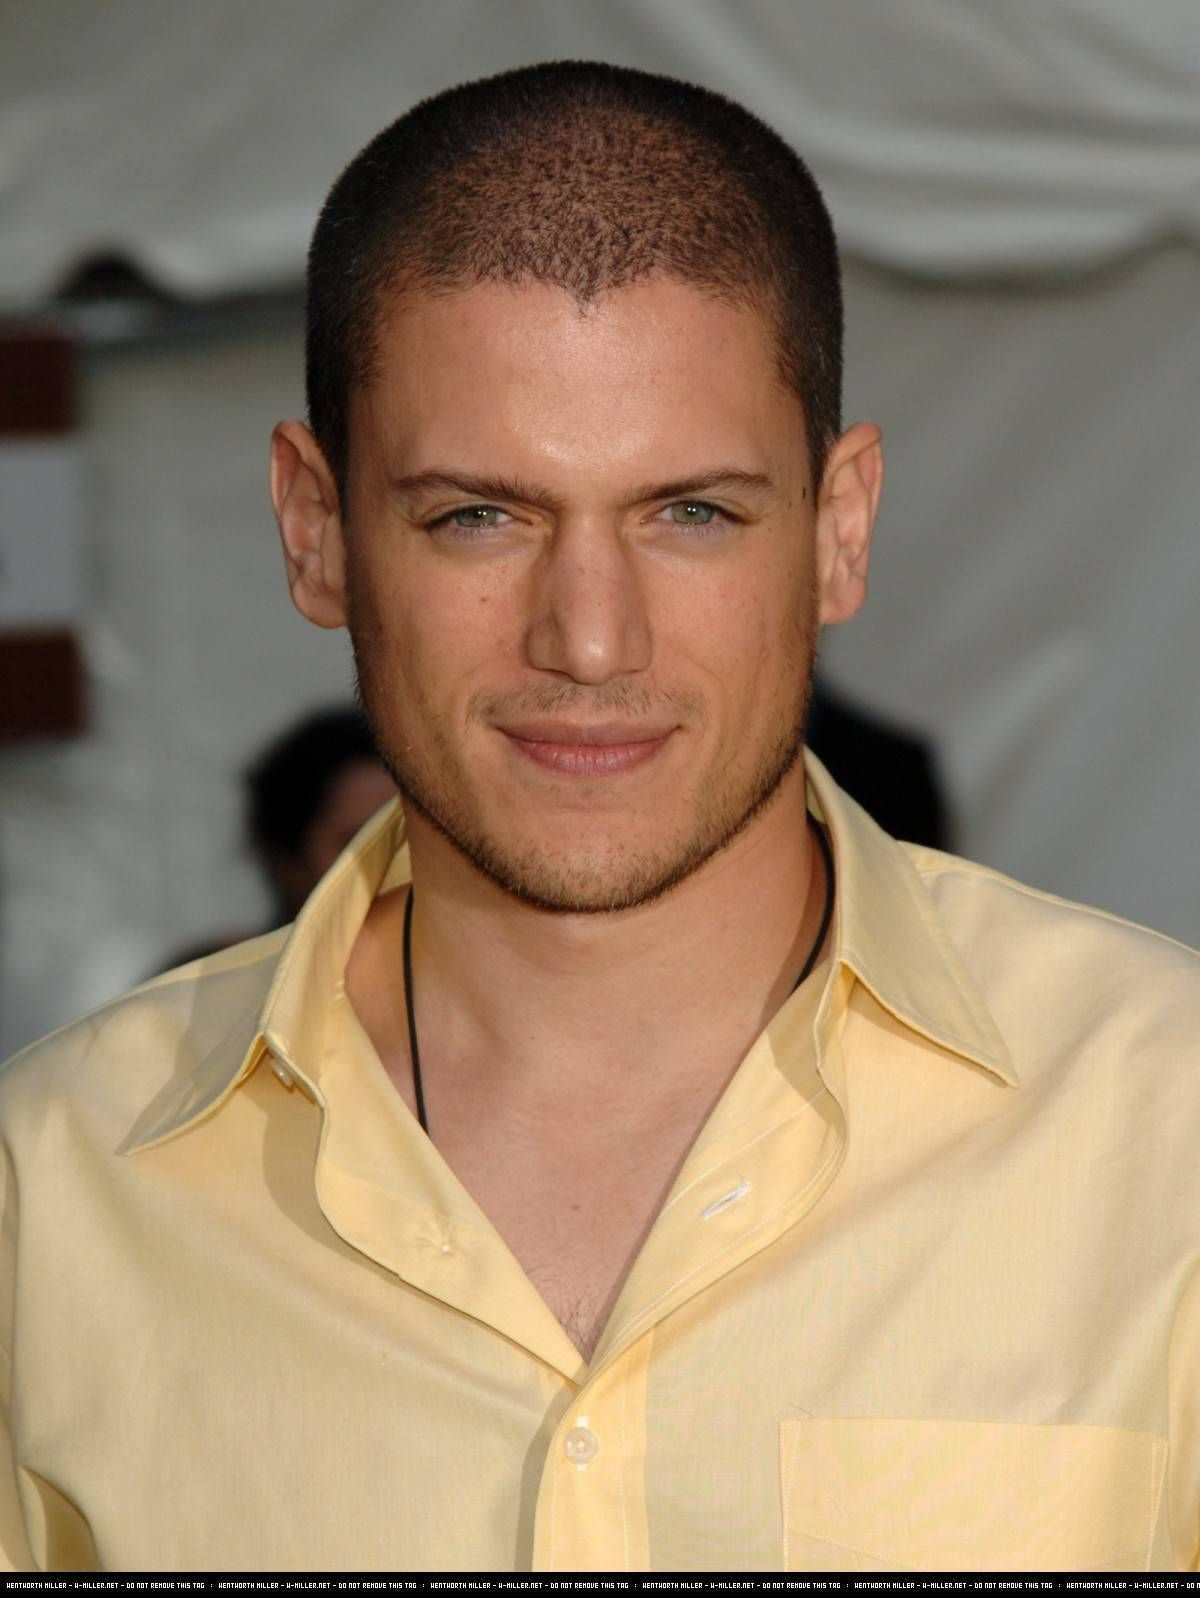 Michael Scofield, actor: biography, personal life, movies 52